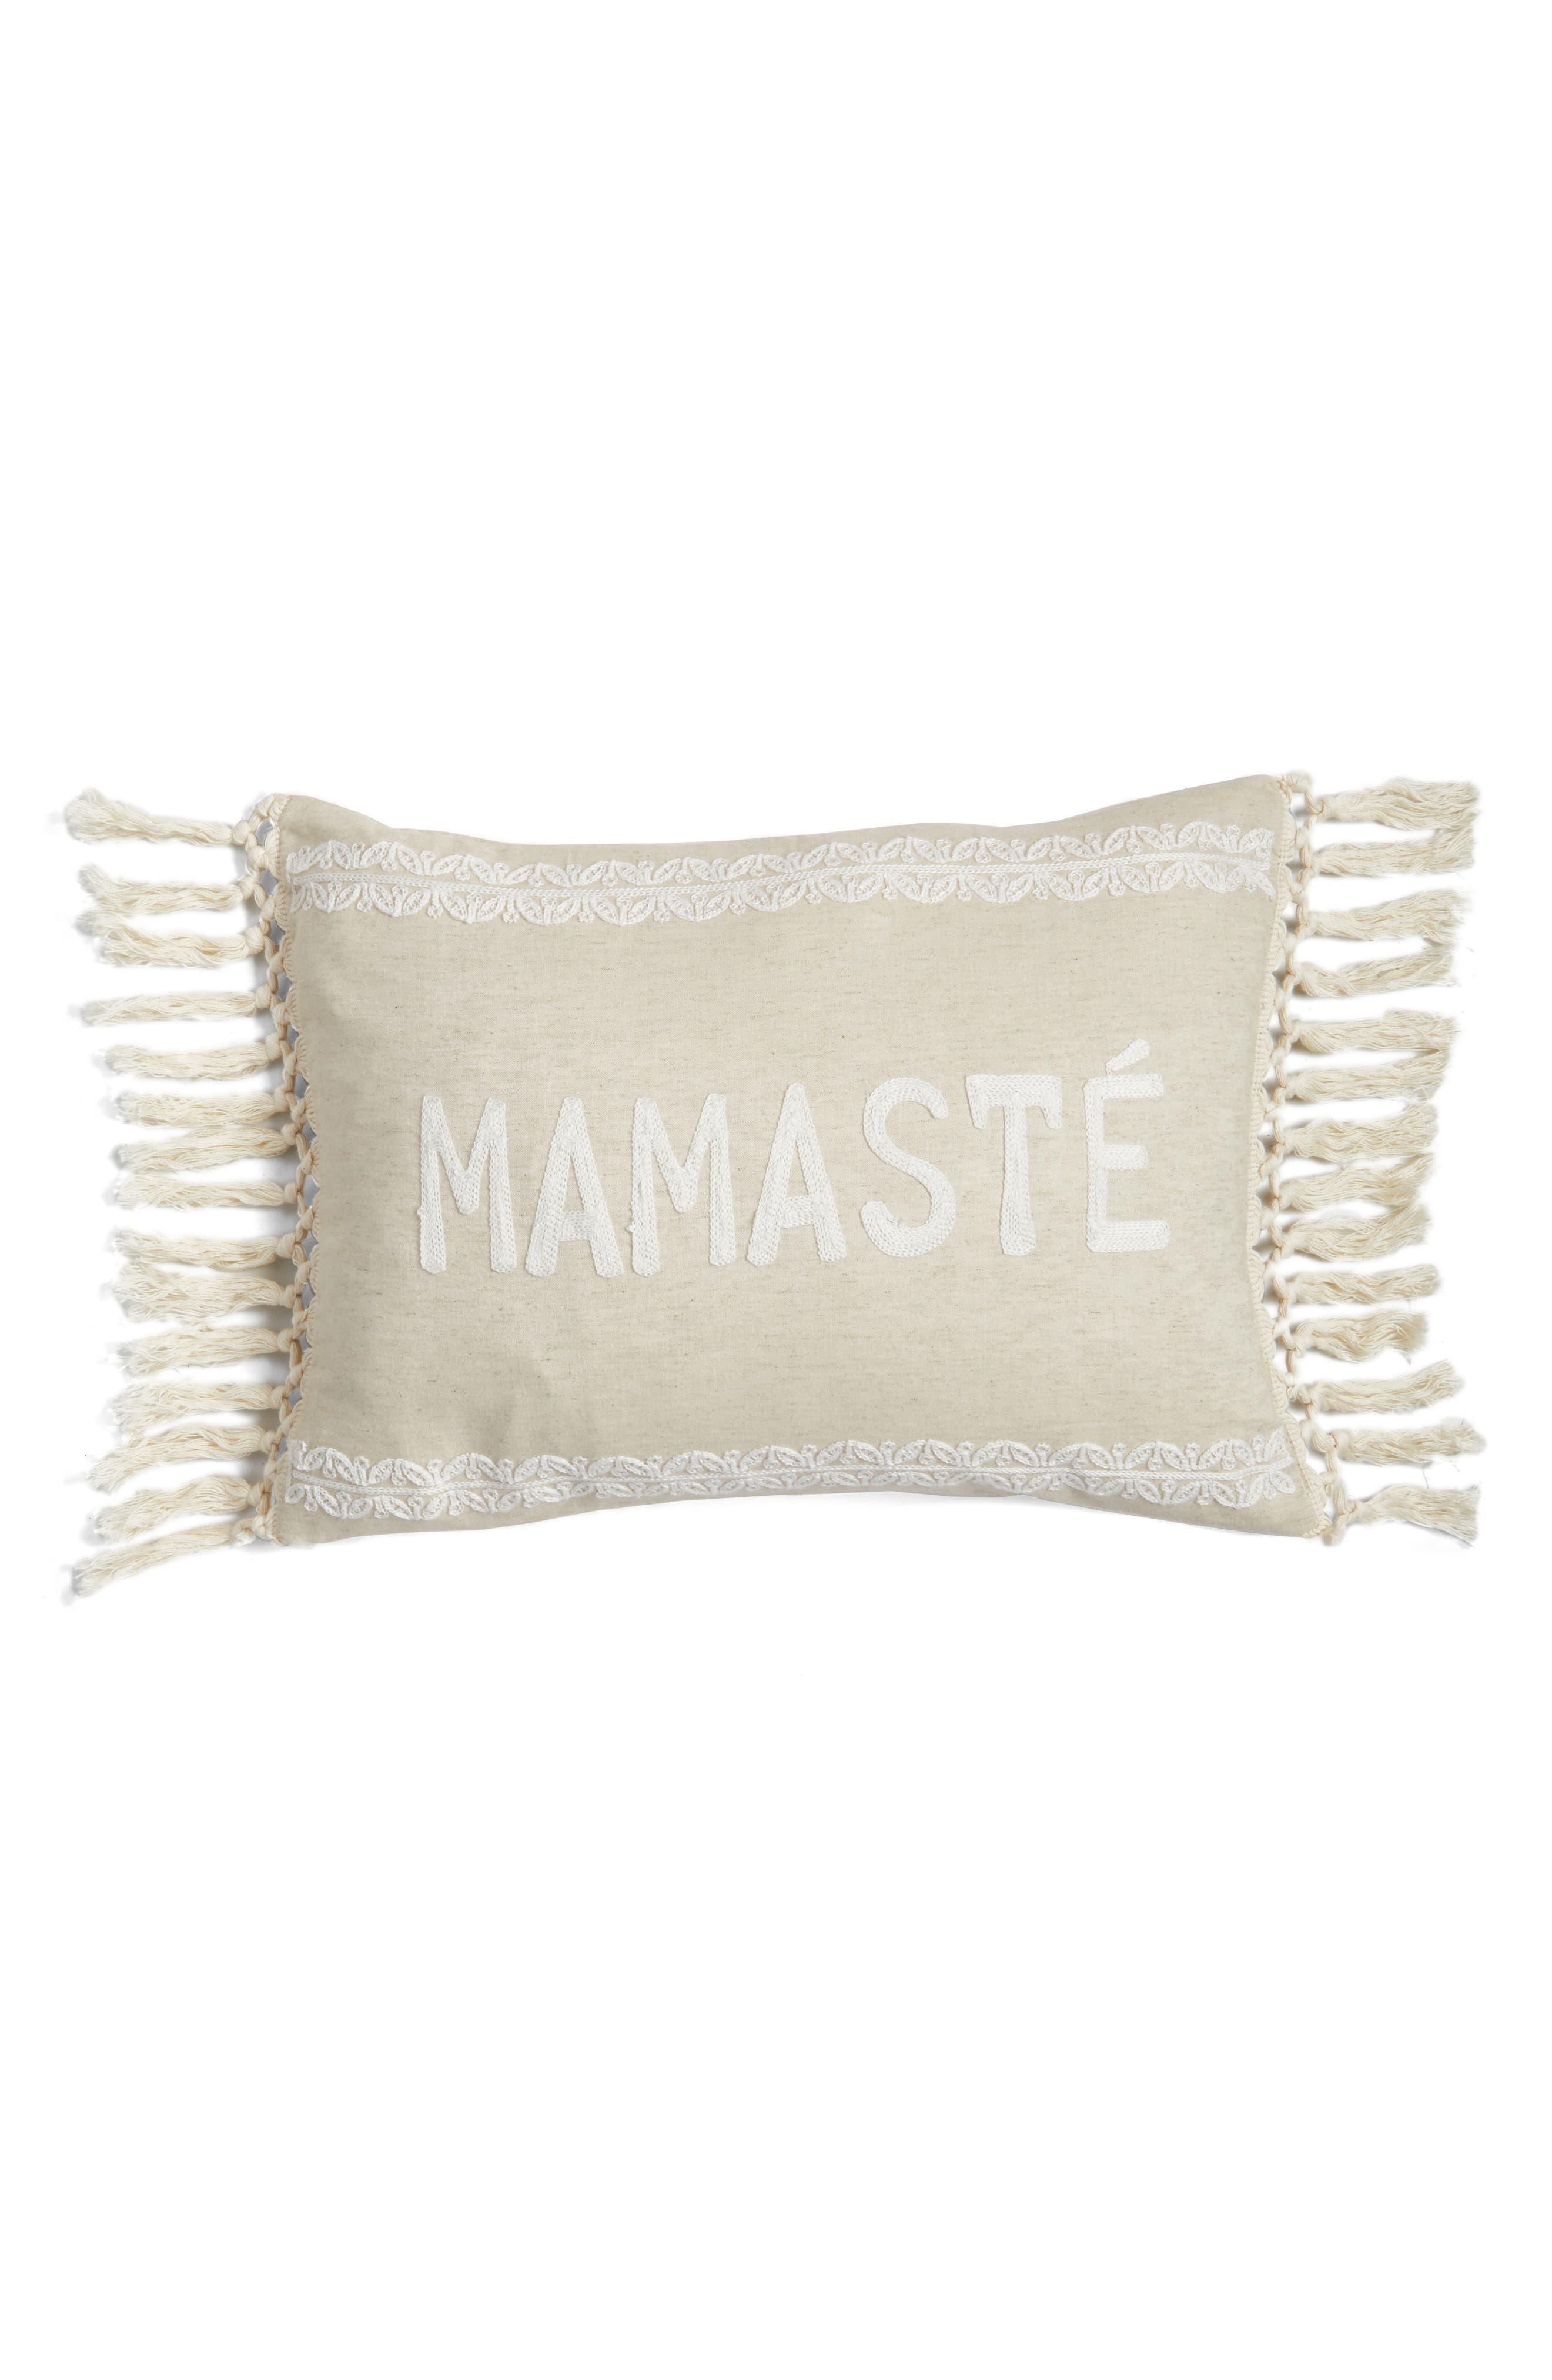 Mamaste Accent Pillow,                         Main,                         color, 250